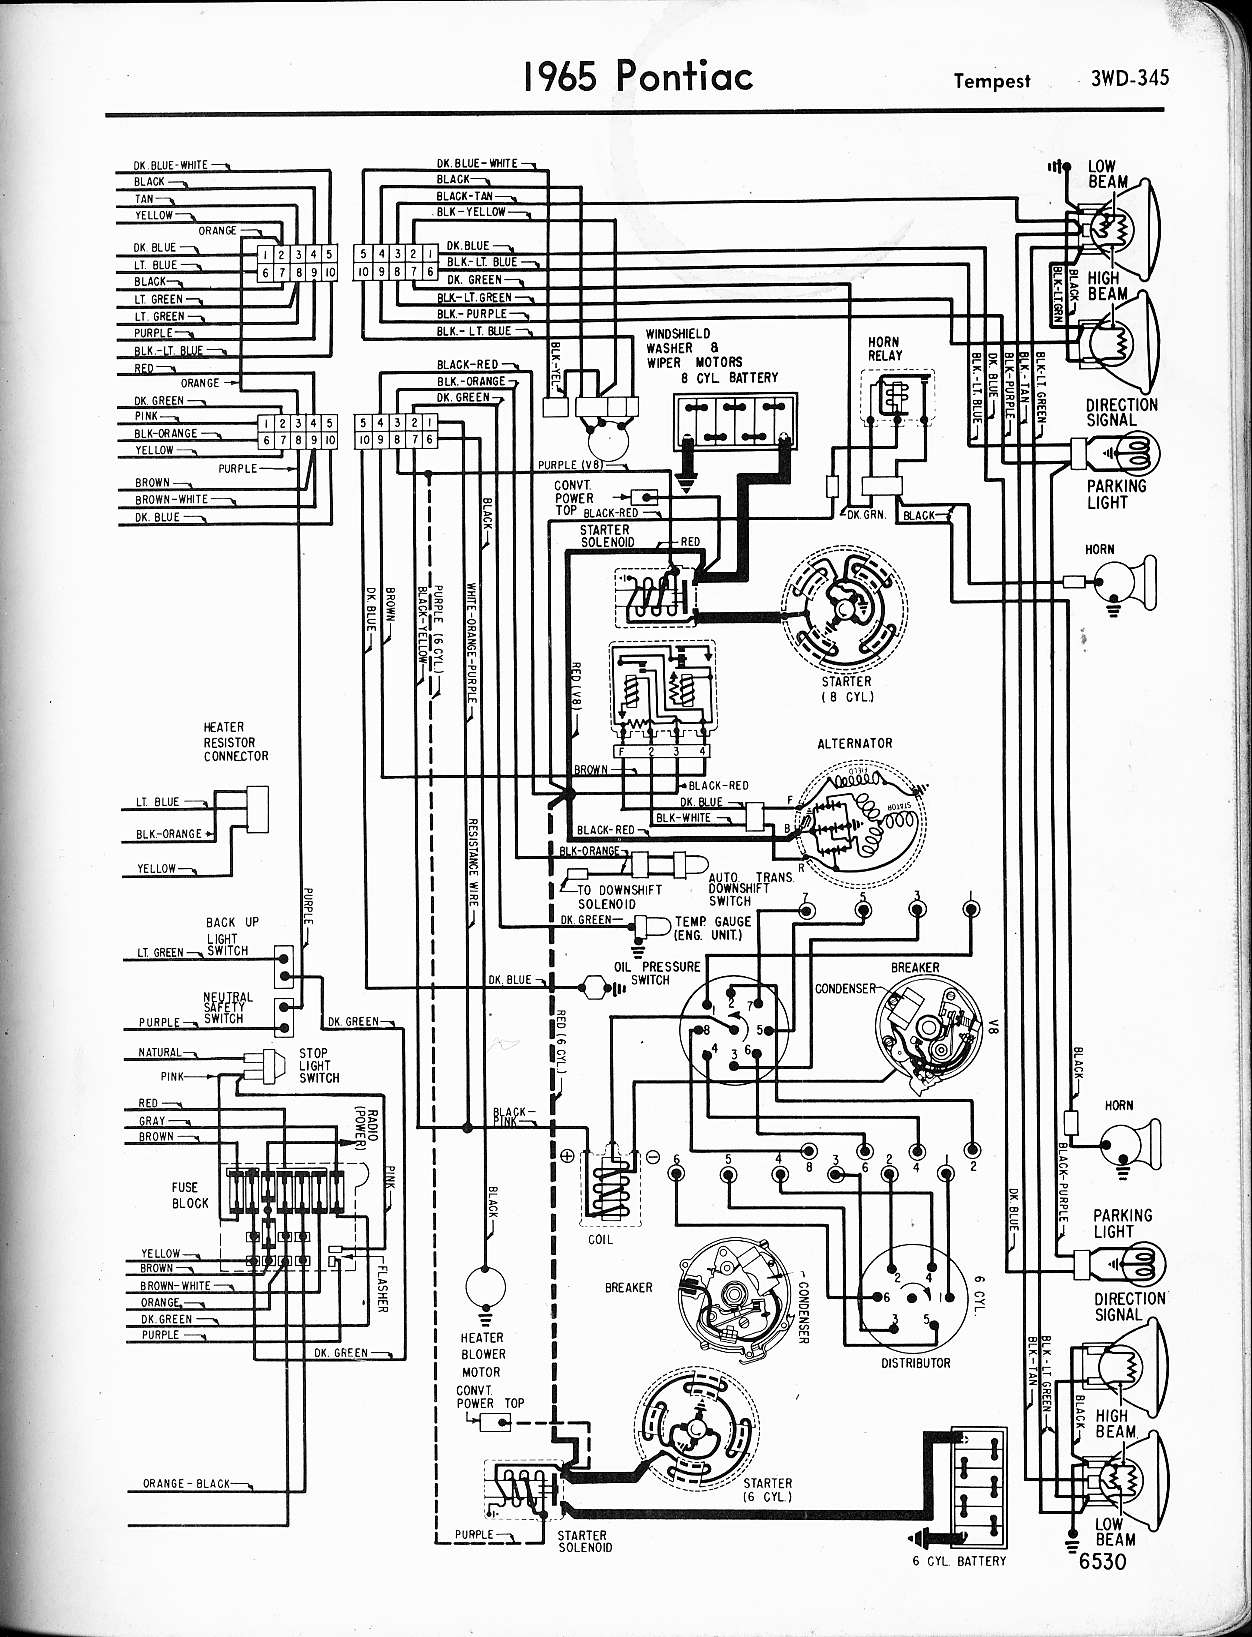 1965 Ford Mustang Turn Signal Wiring Schematic Library 68 Color Of Wires 65 Gto Diagram 1979 1980